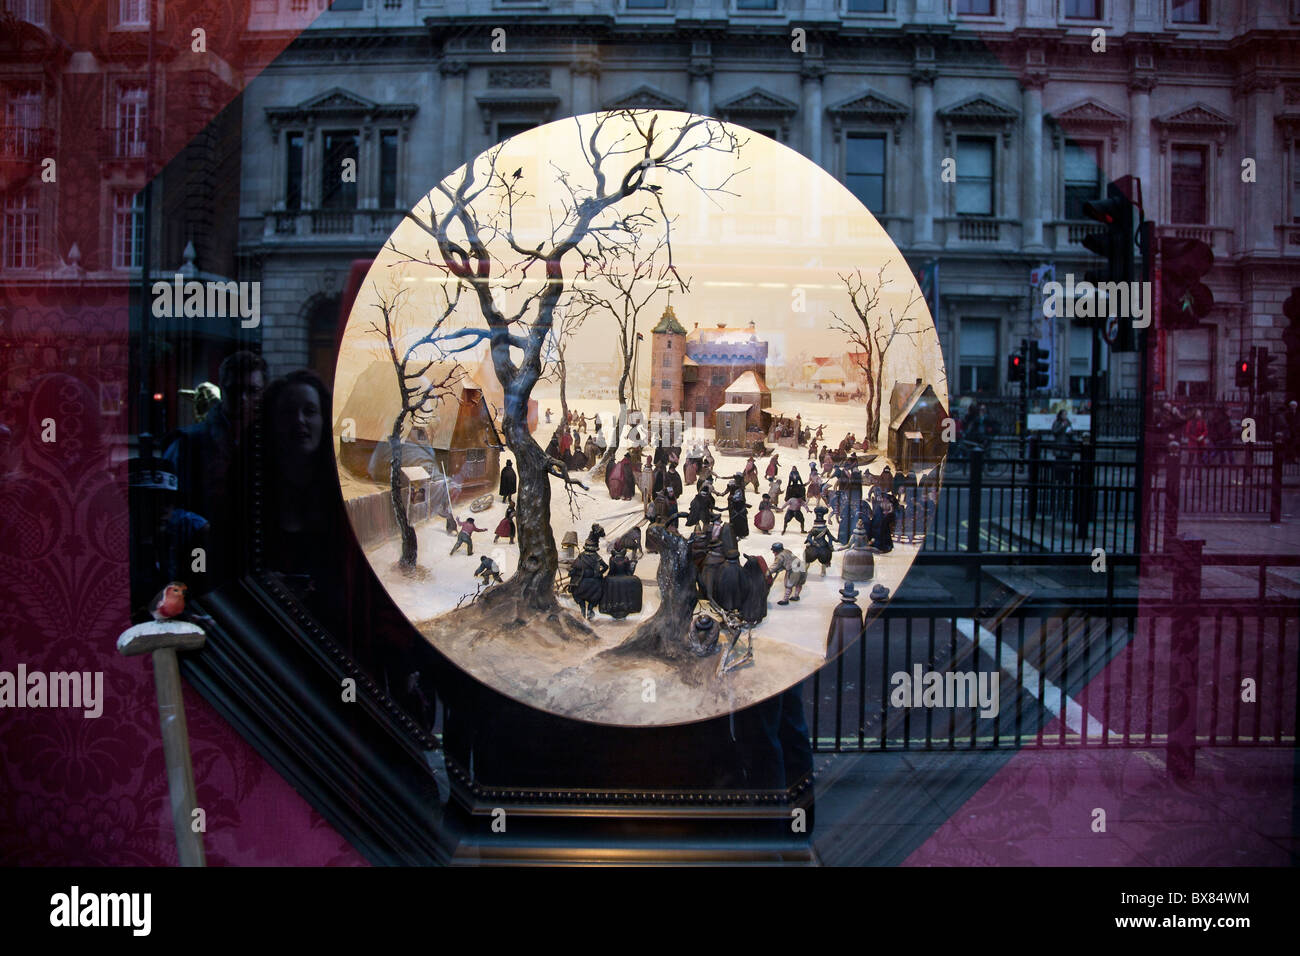 Fortnum mason store london christmas window display - Fortnum and mason christmas decorations ...